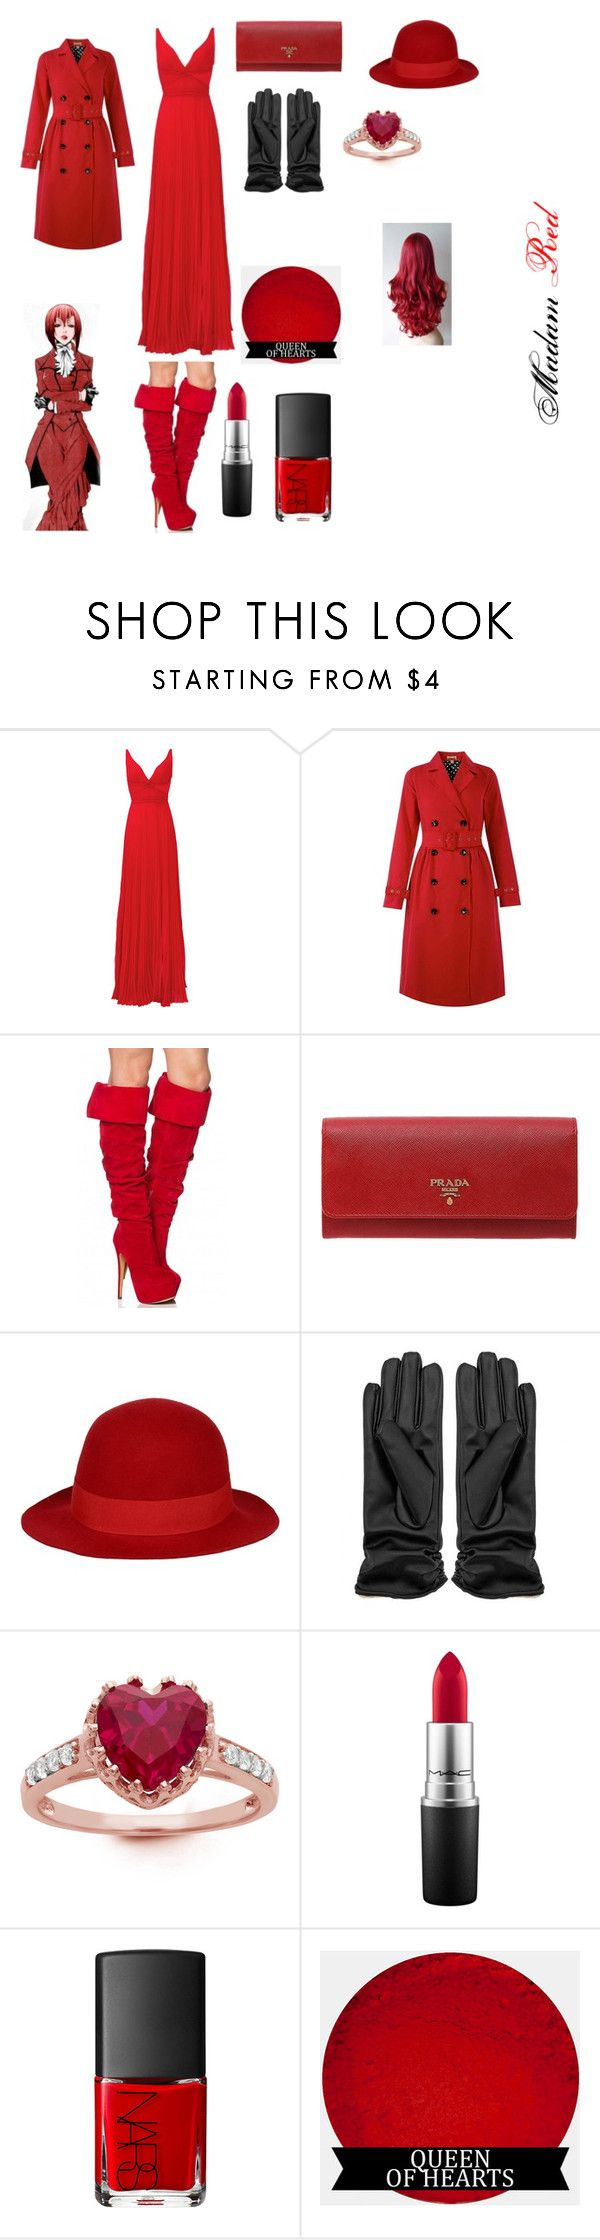 """Black Butler Madam Red"" by livyv123 ❤ liked on Polyvore featuring Laundry by Shelli Segal, Prada, George J. Love, Gioelli, MAC Cosmetics and NARS Cosmetics"